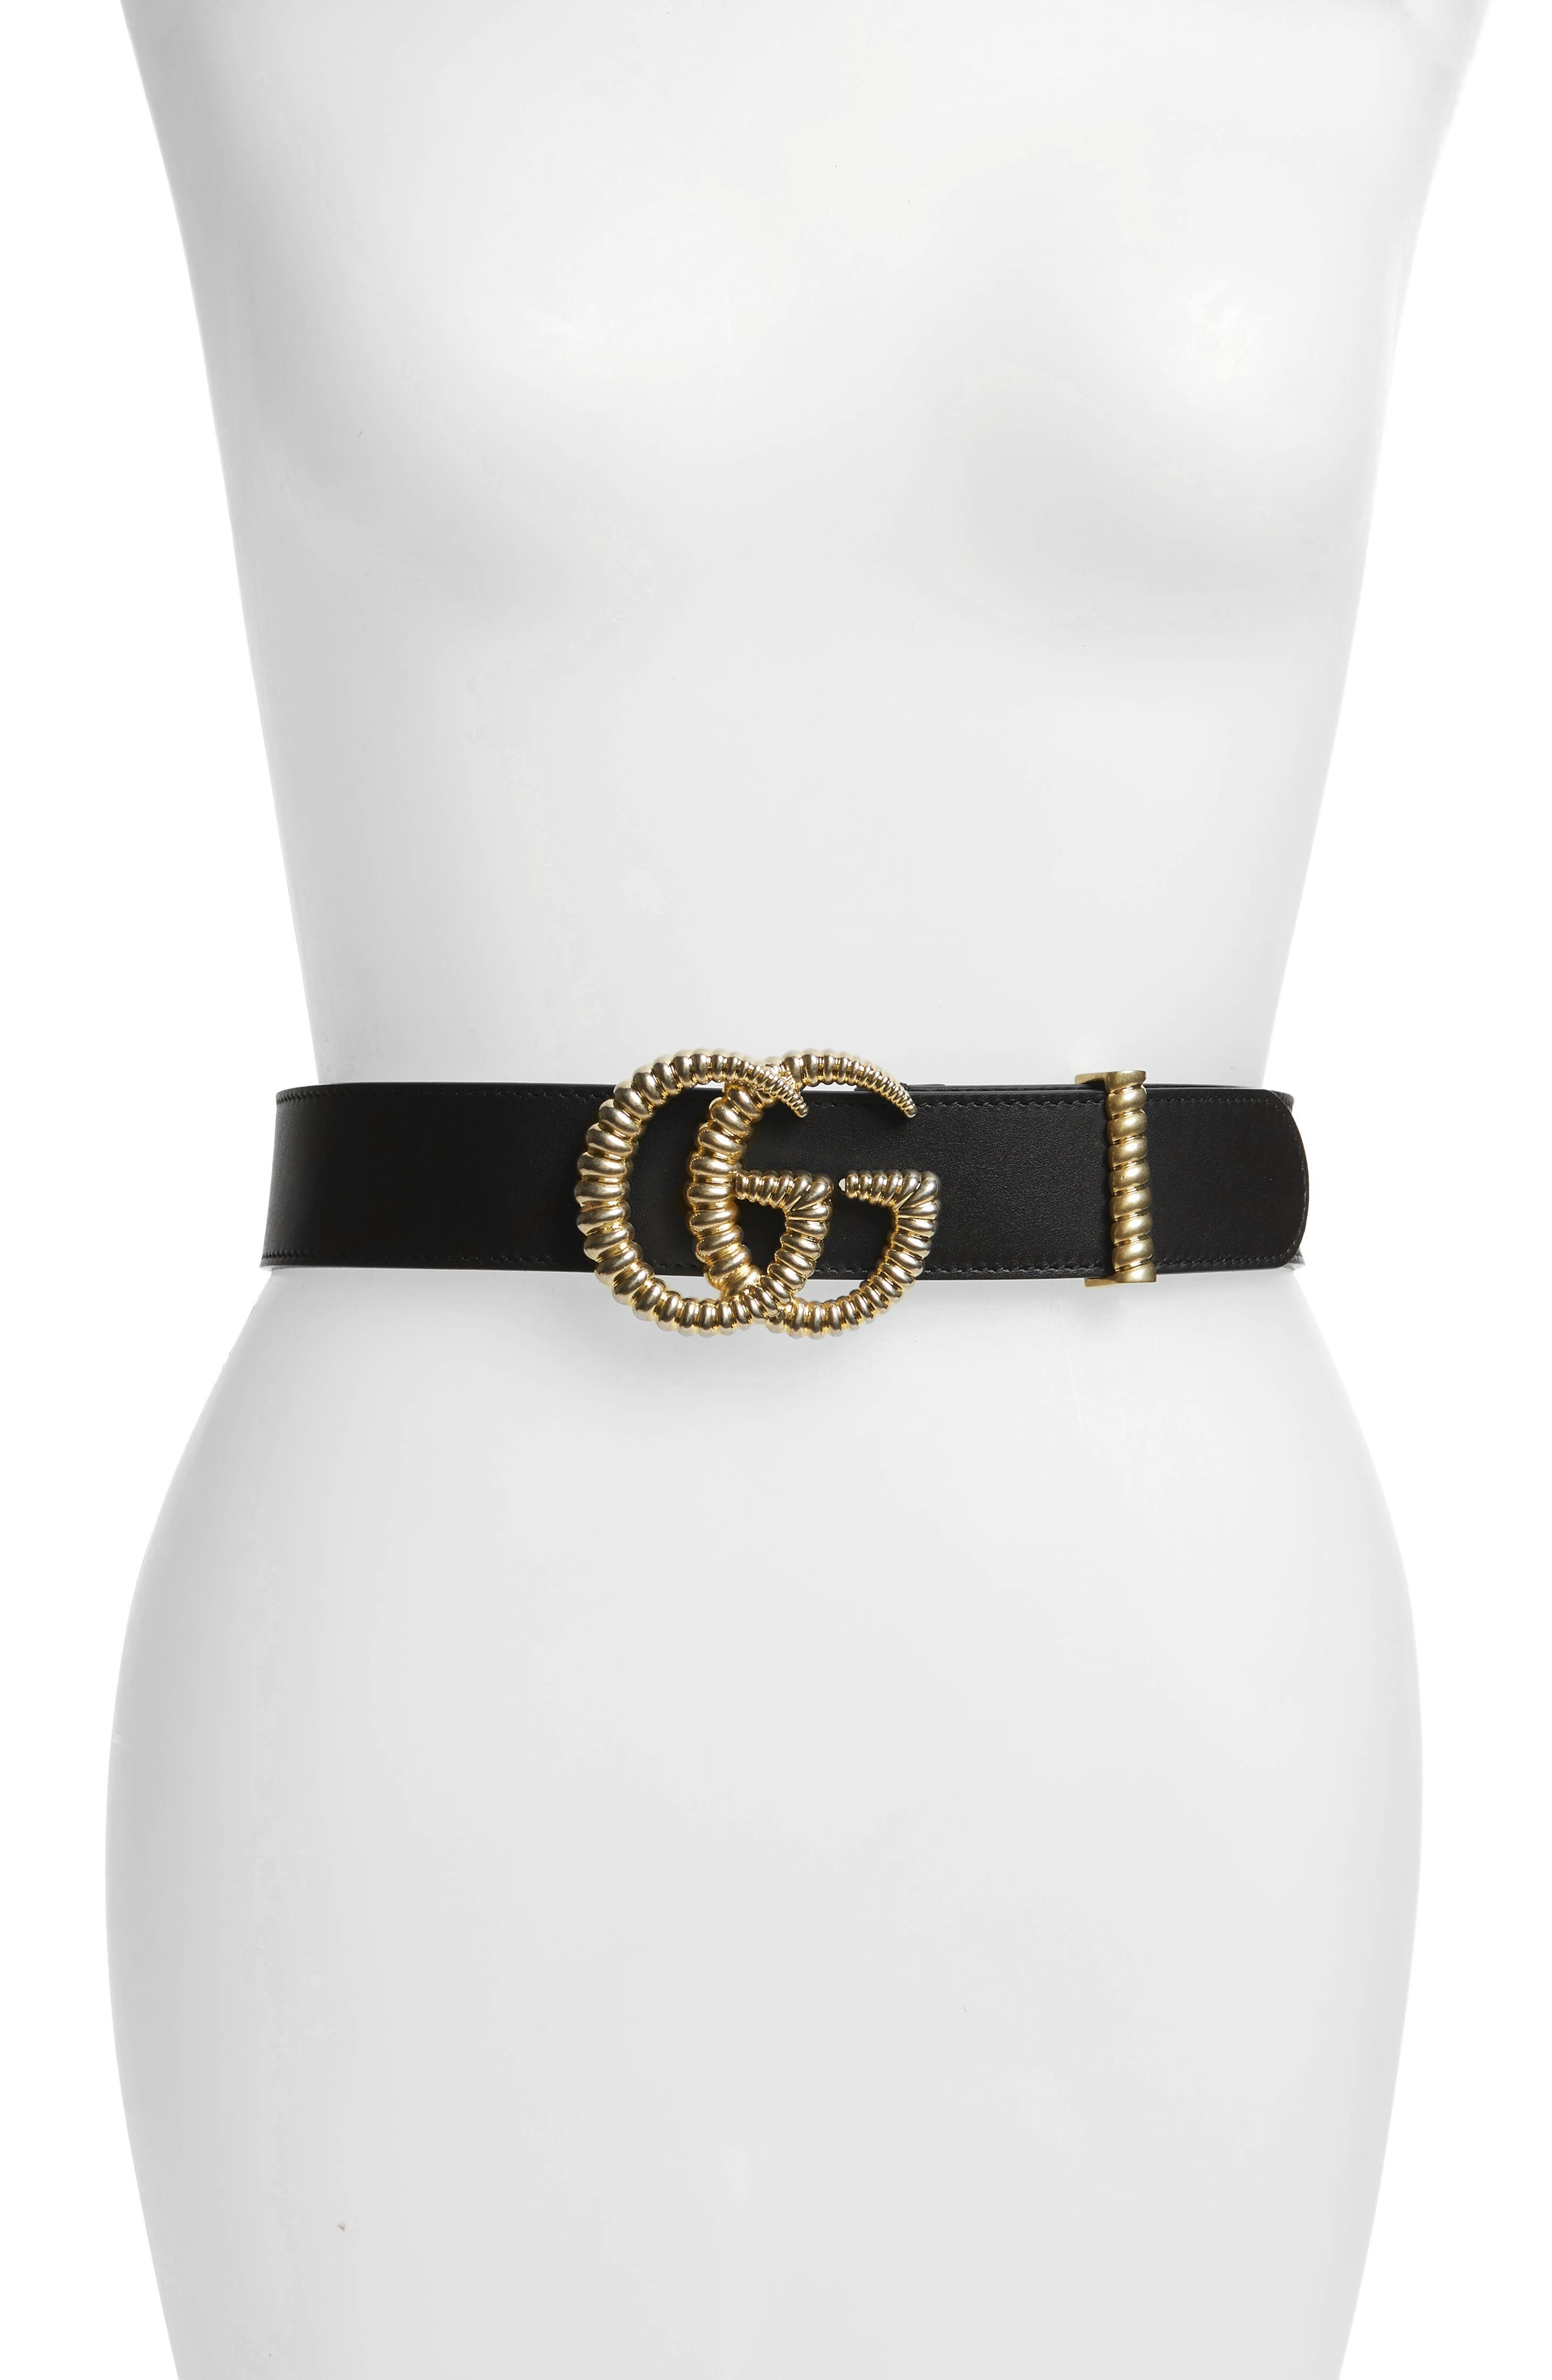 GUCCI, Textured GG Logo Leather Belt, Main thumbnail 1, color, NERO